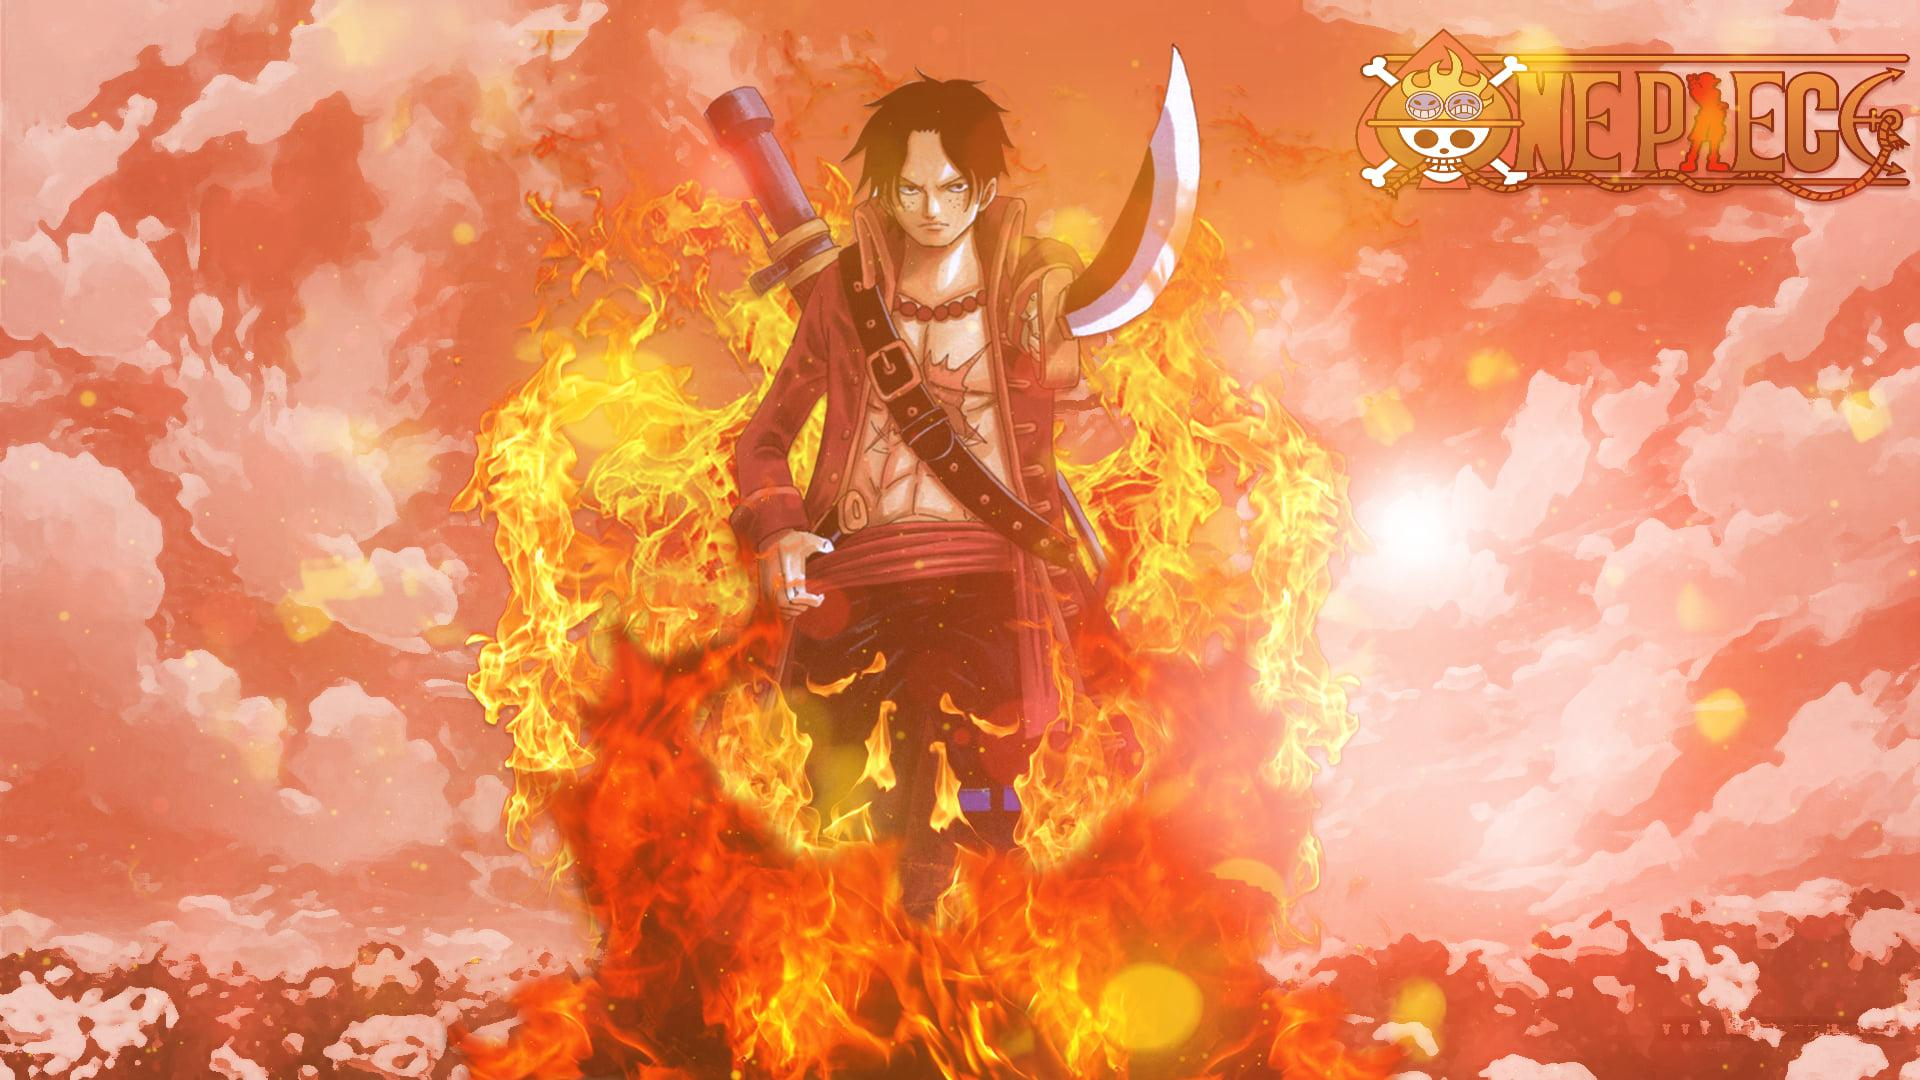 One Piece Ace wallpaper HD (60 Wallpapers) - Adorable ...